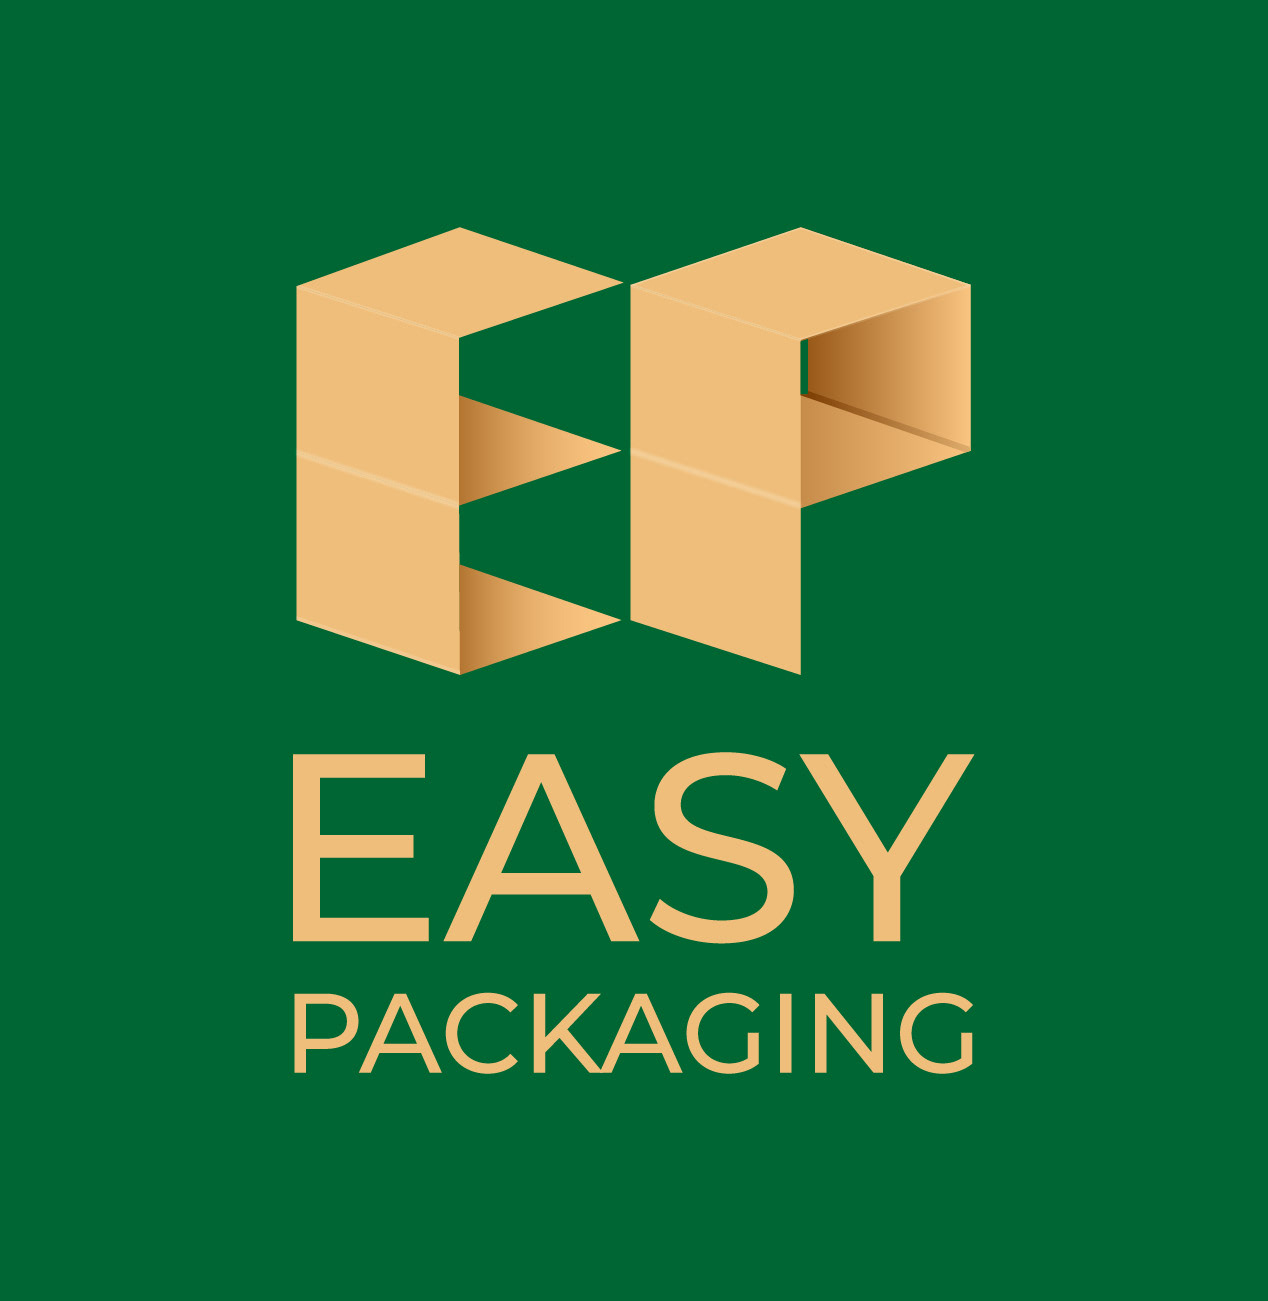 Easy Access Projects Photos Videos Logos Illustrations And Branding On Behance